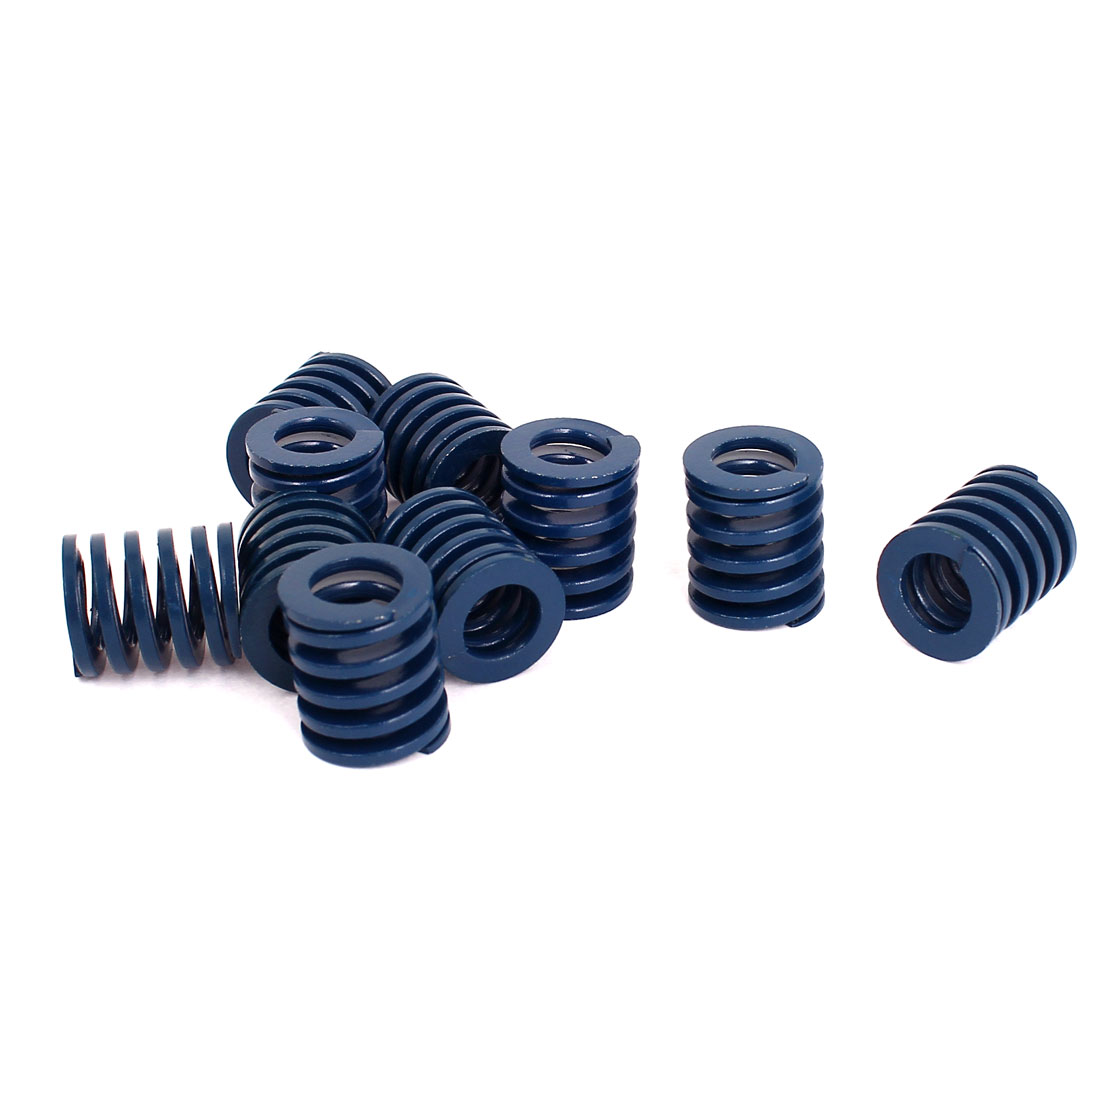 18mm OD 20mm Long Light Load Stamping Compression Mold Die Spring Blue 10pcs